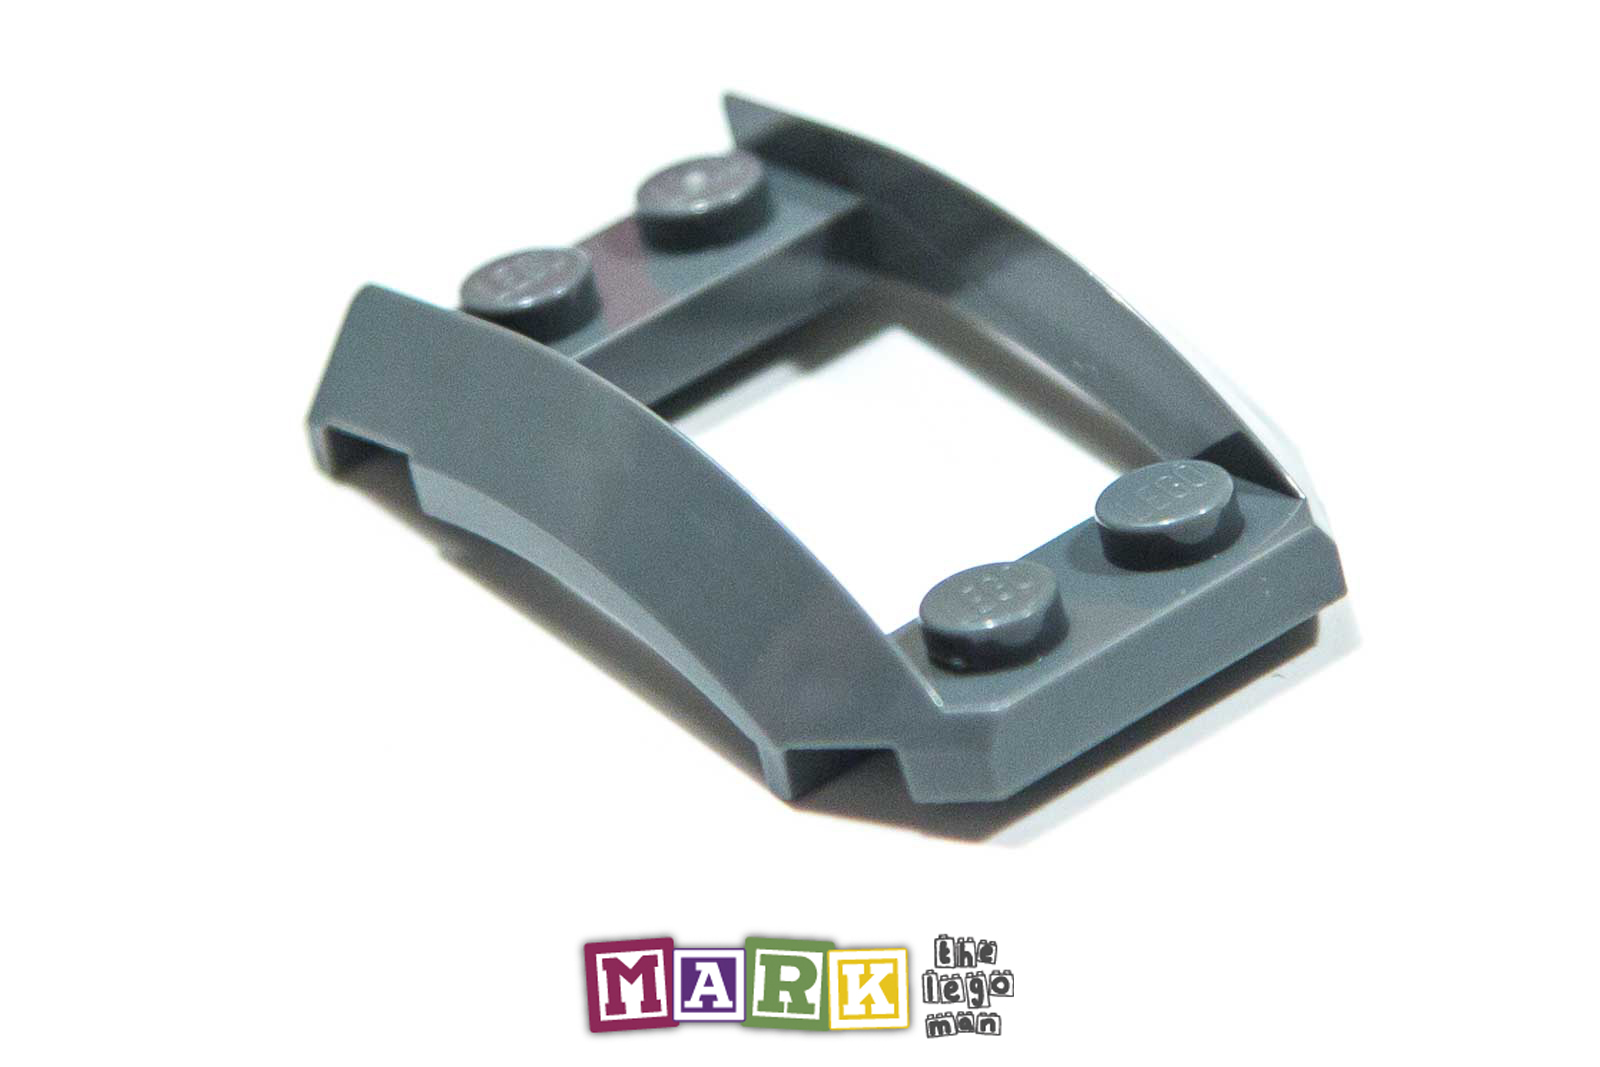 New Lego 47755 2x4x1 1/3 Plate with Side Bow 4294289